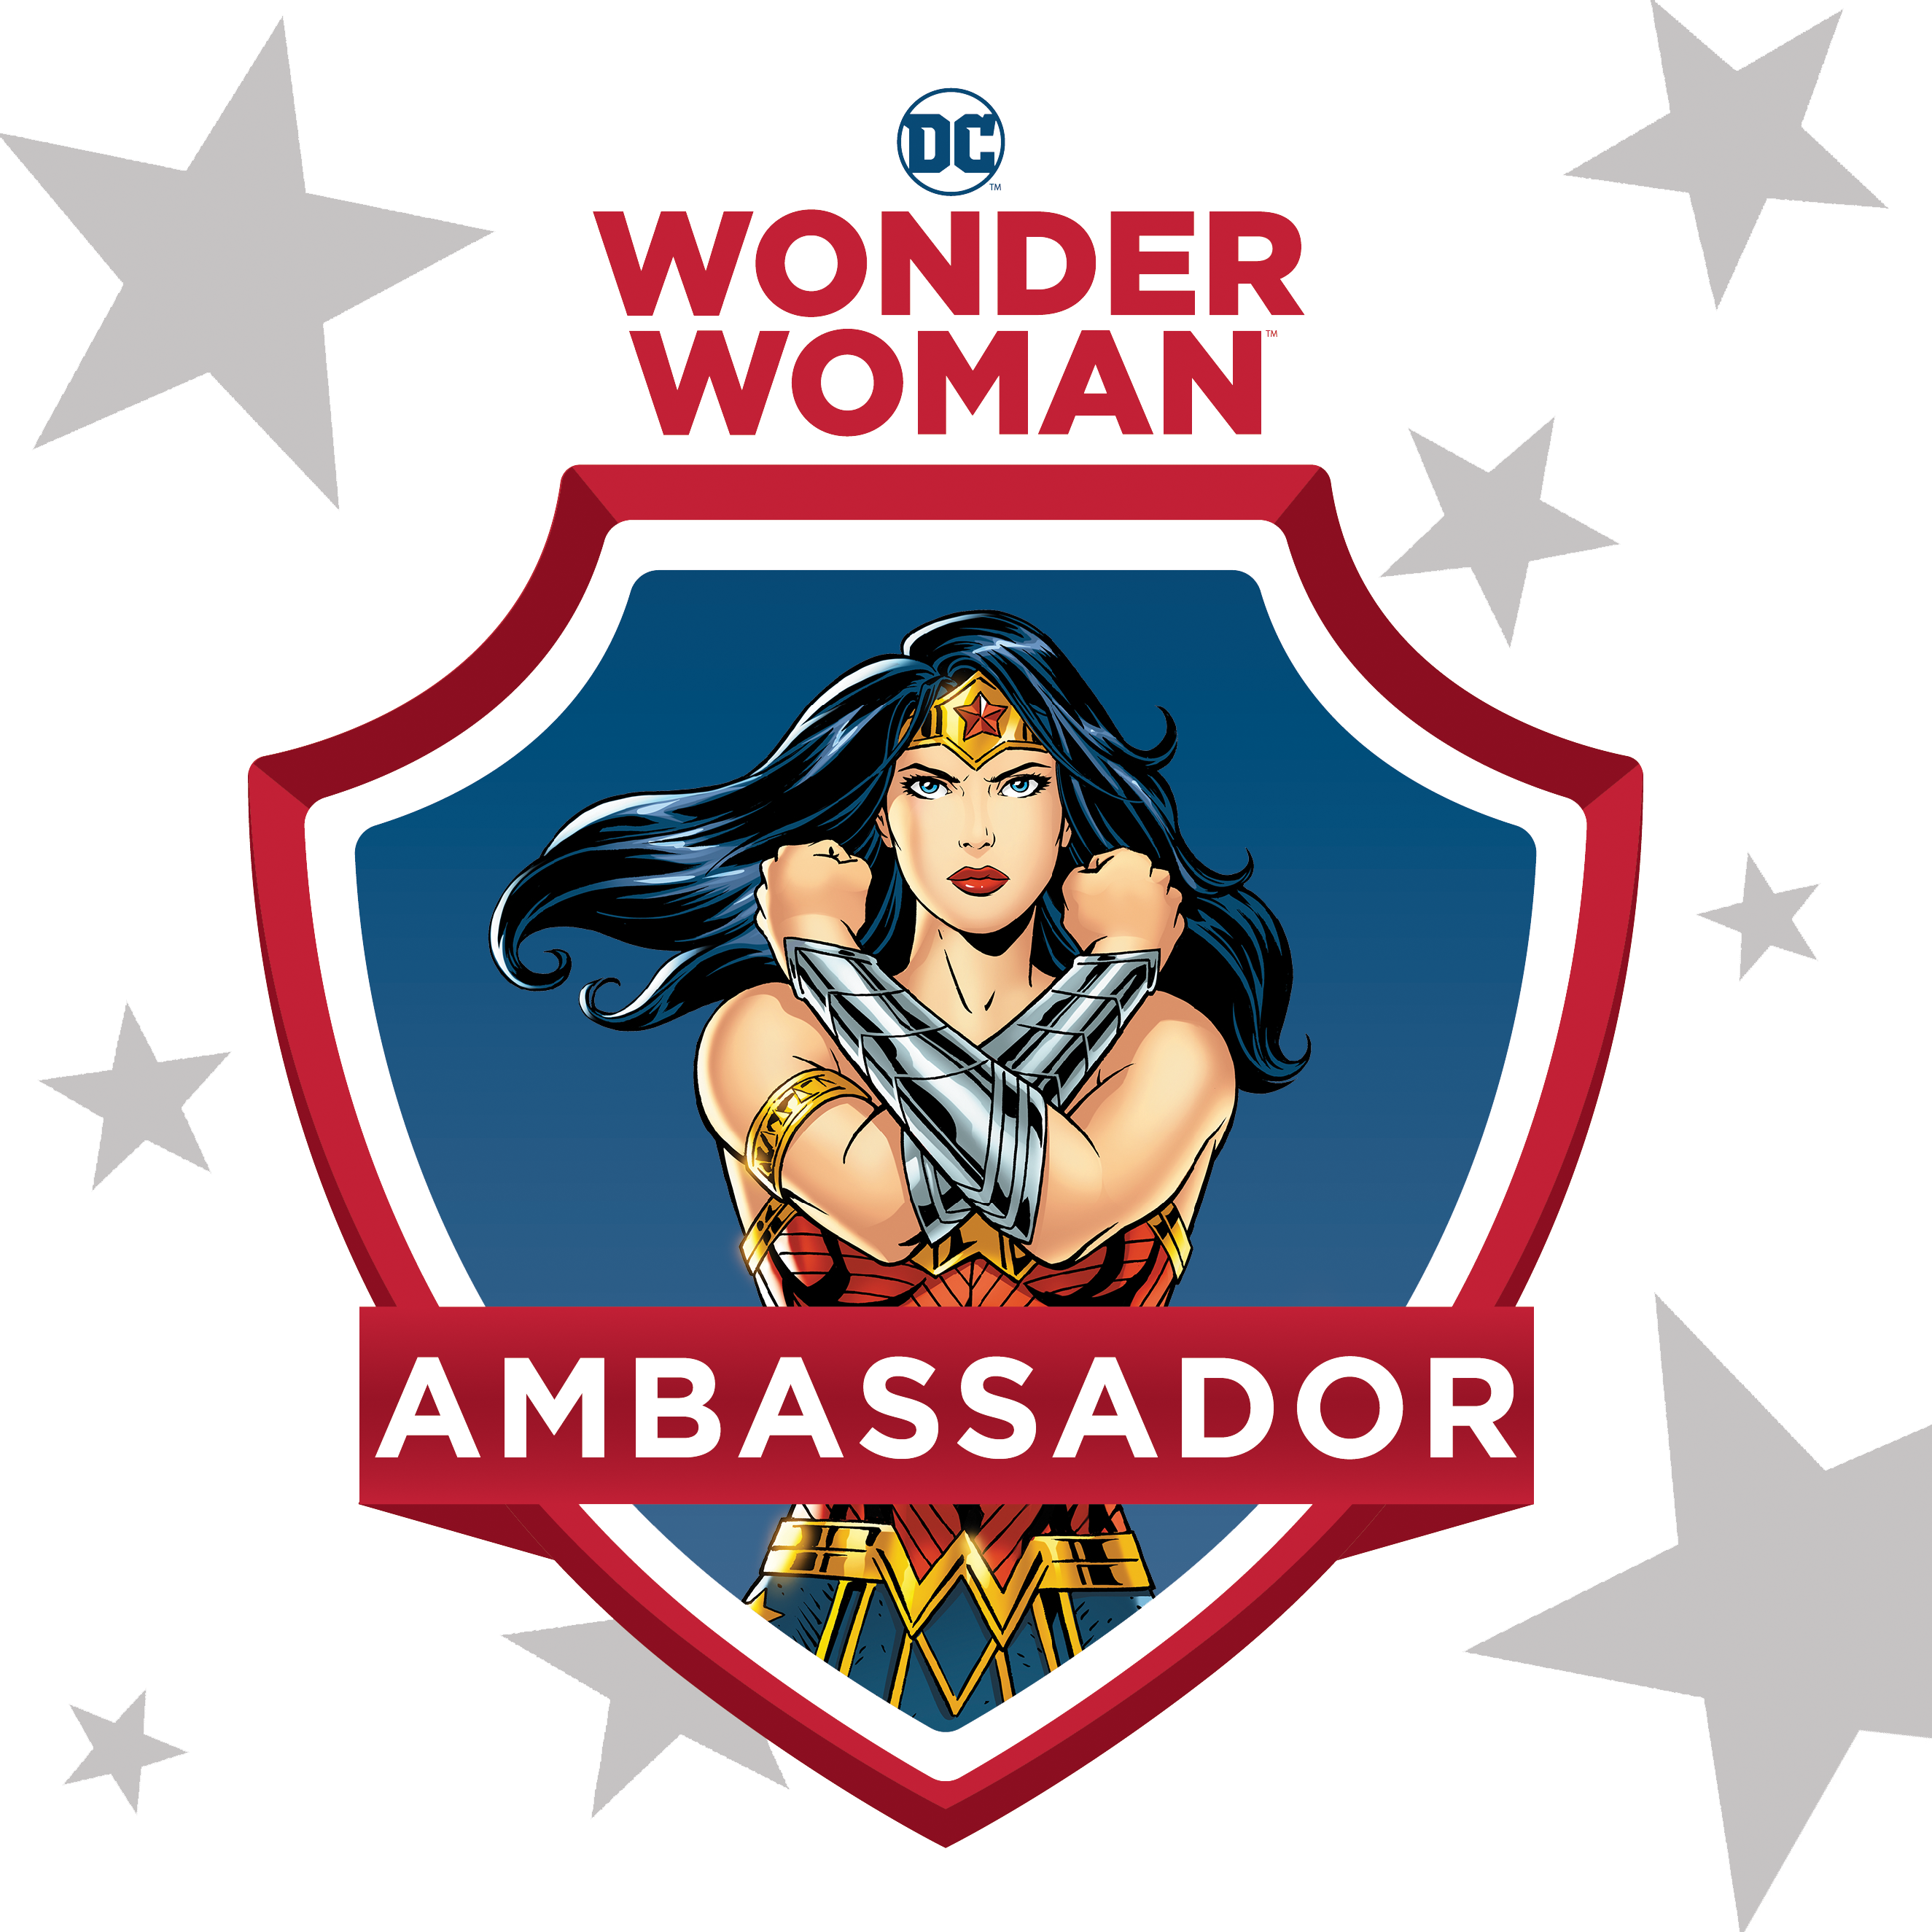 Come check us out DC Wonder Woman Run Series